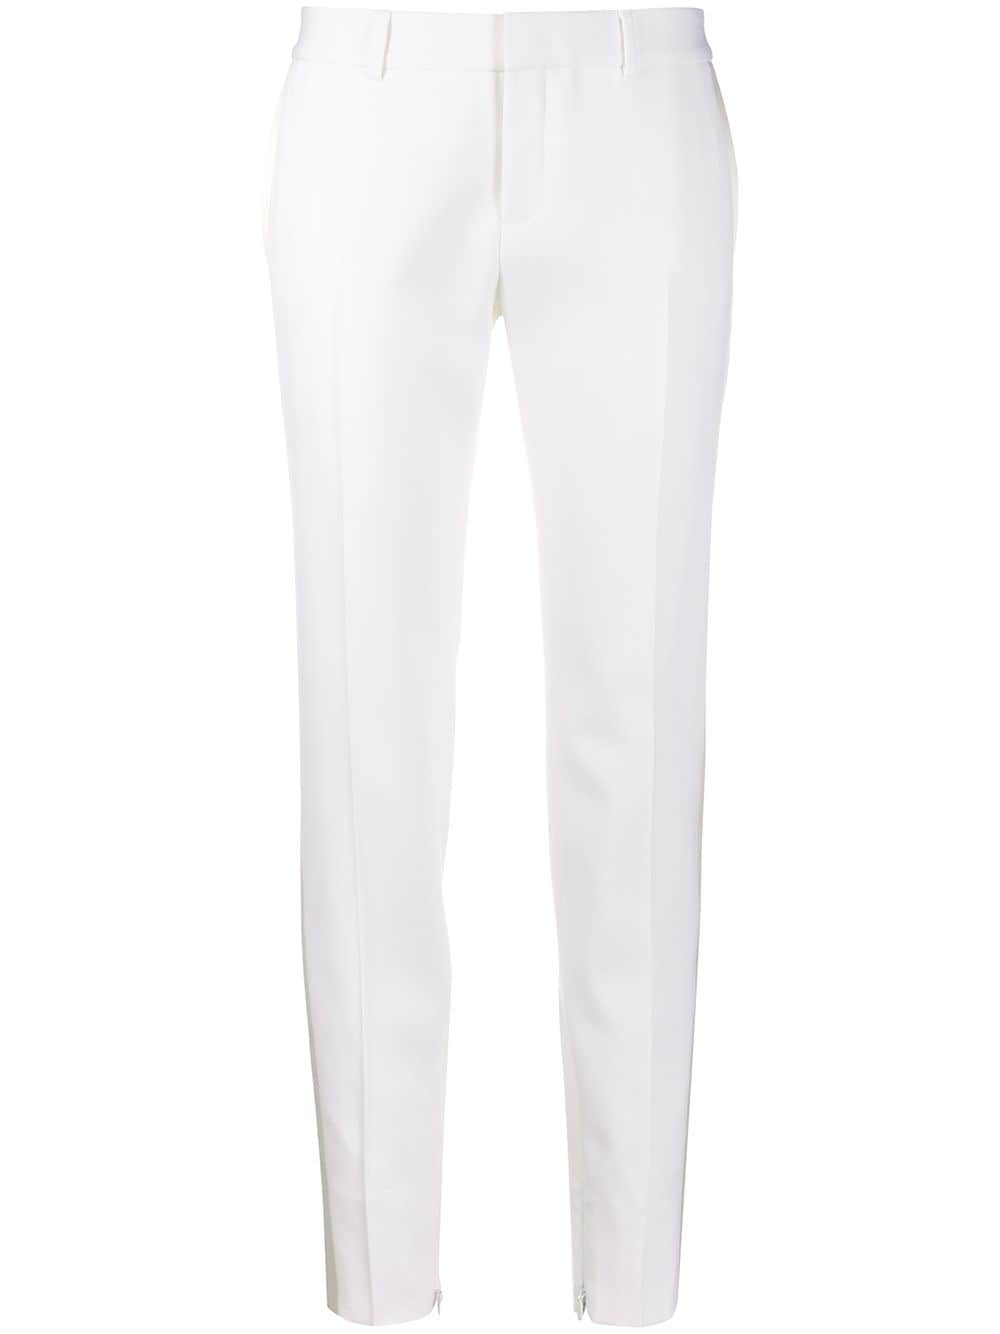 White Tapered Trousers